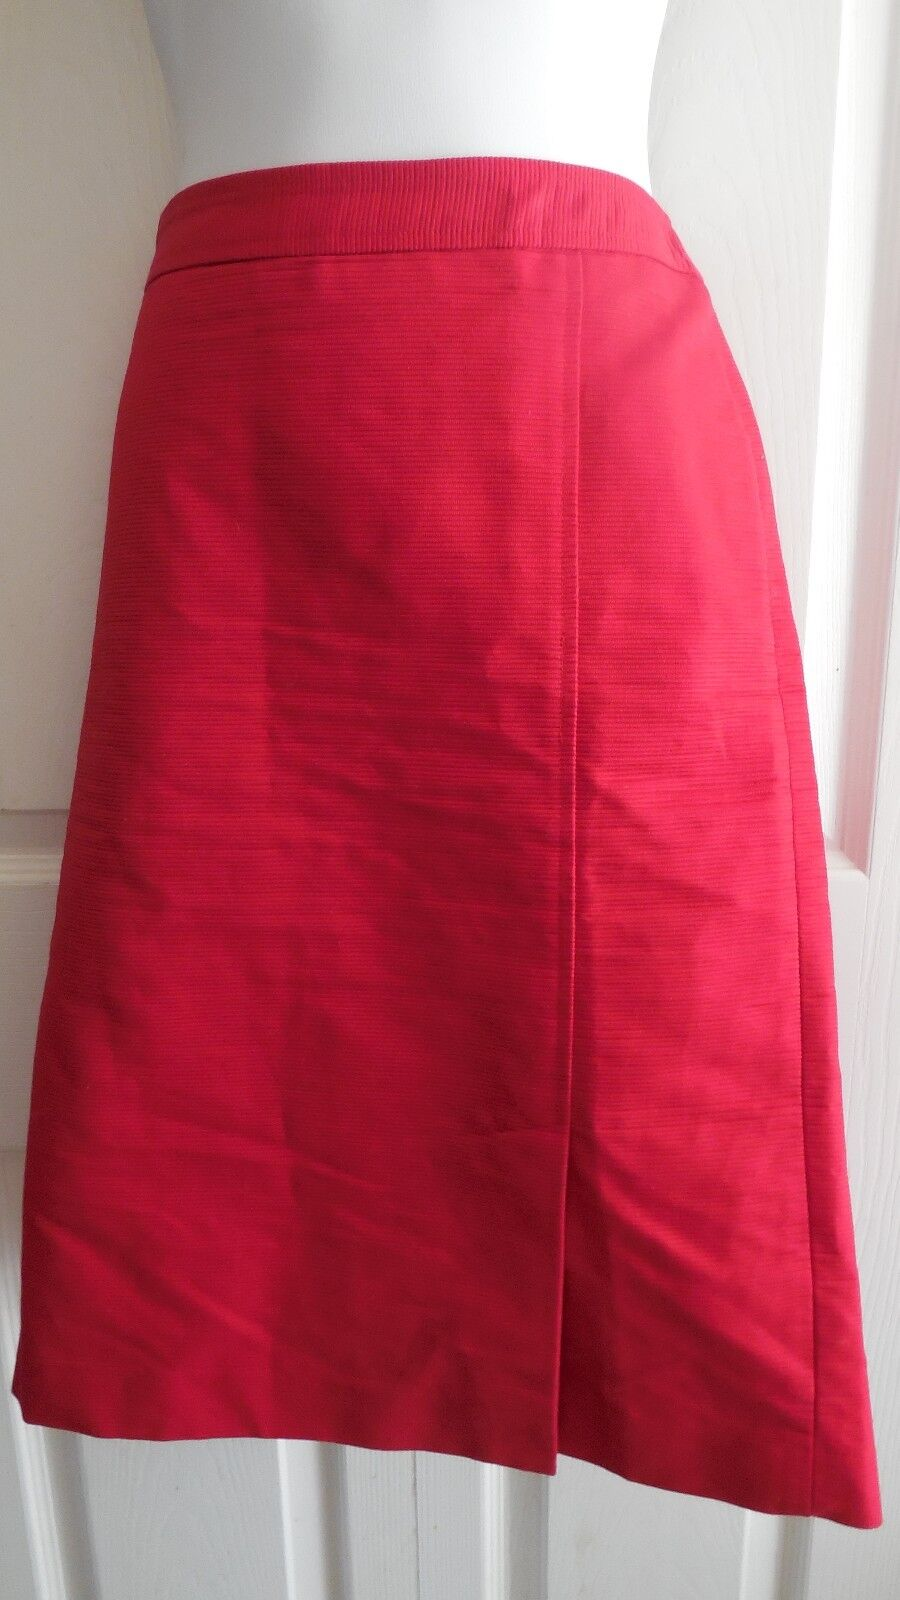 TALBOTS RED LINED 100% COTTON PENCIL WEAR TO WORK SKIRT 10